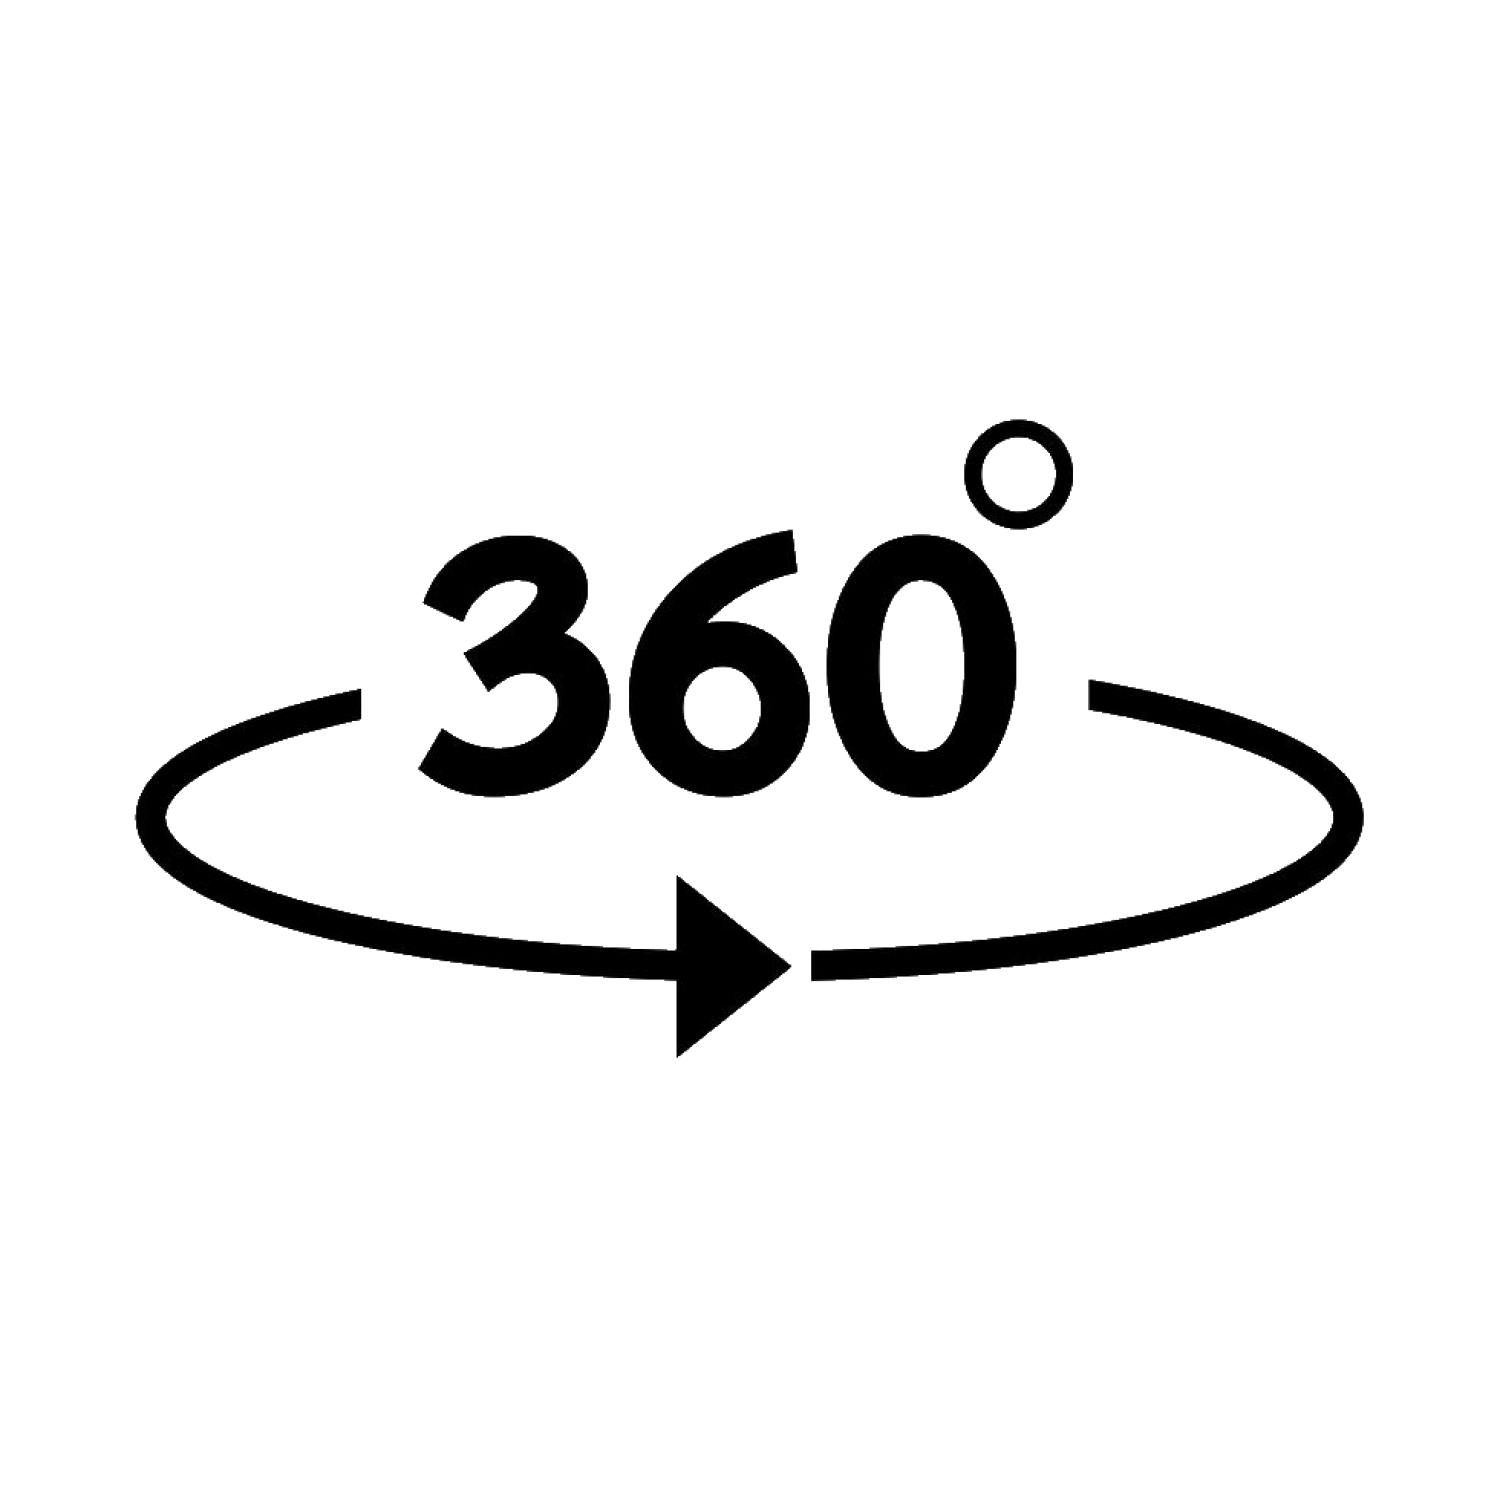 360-degree-icon-vector